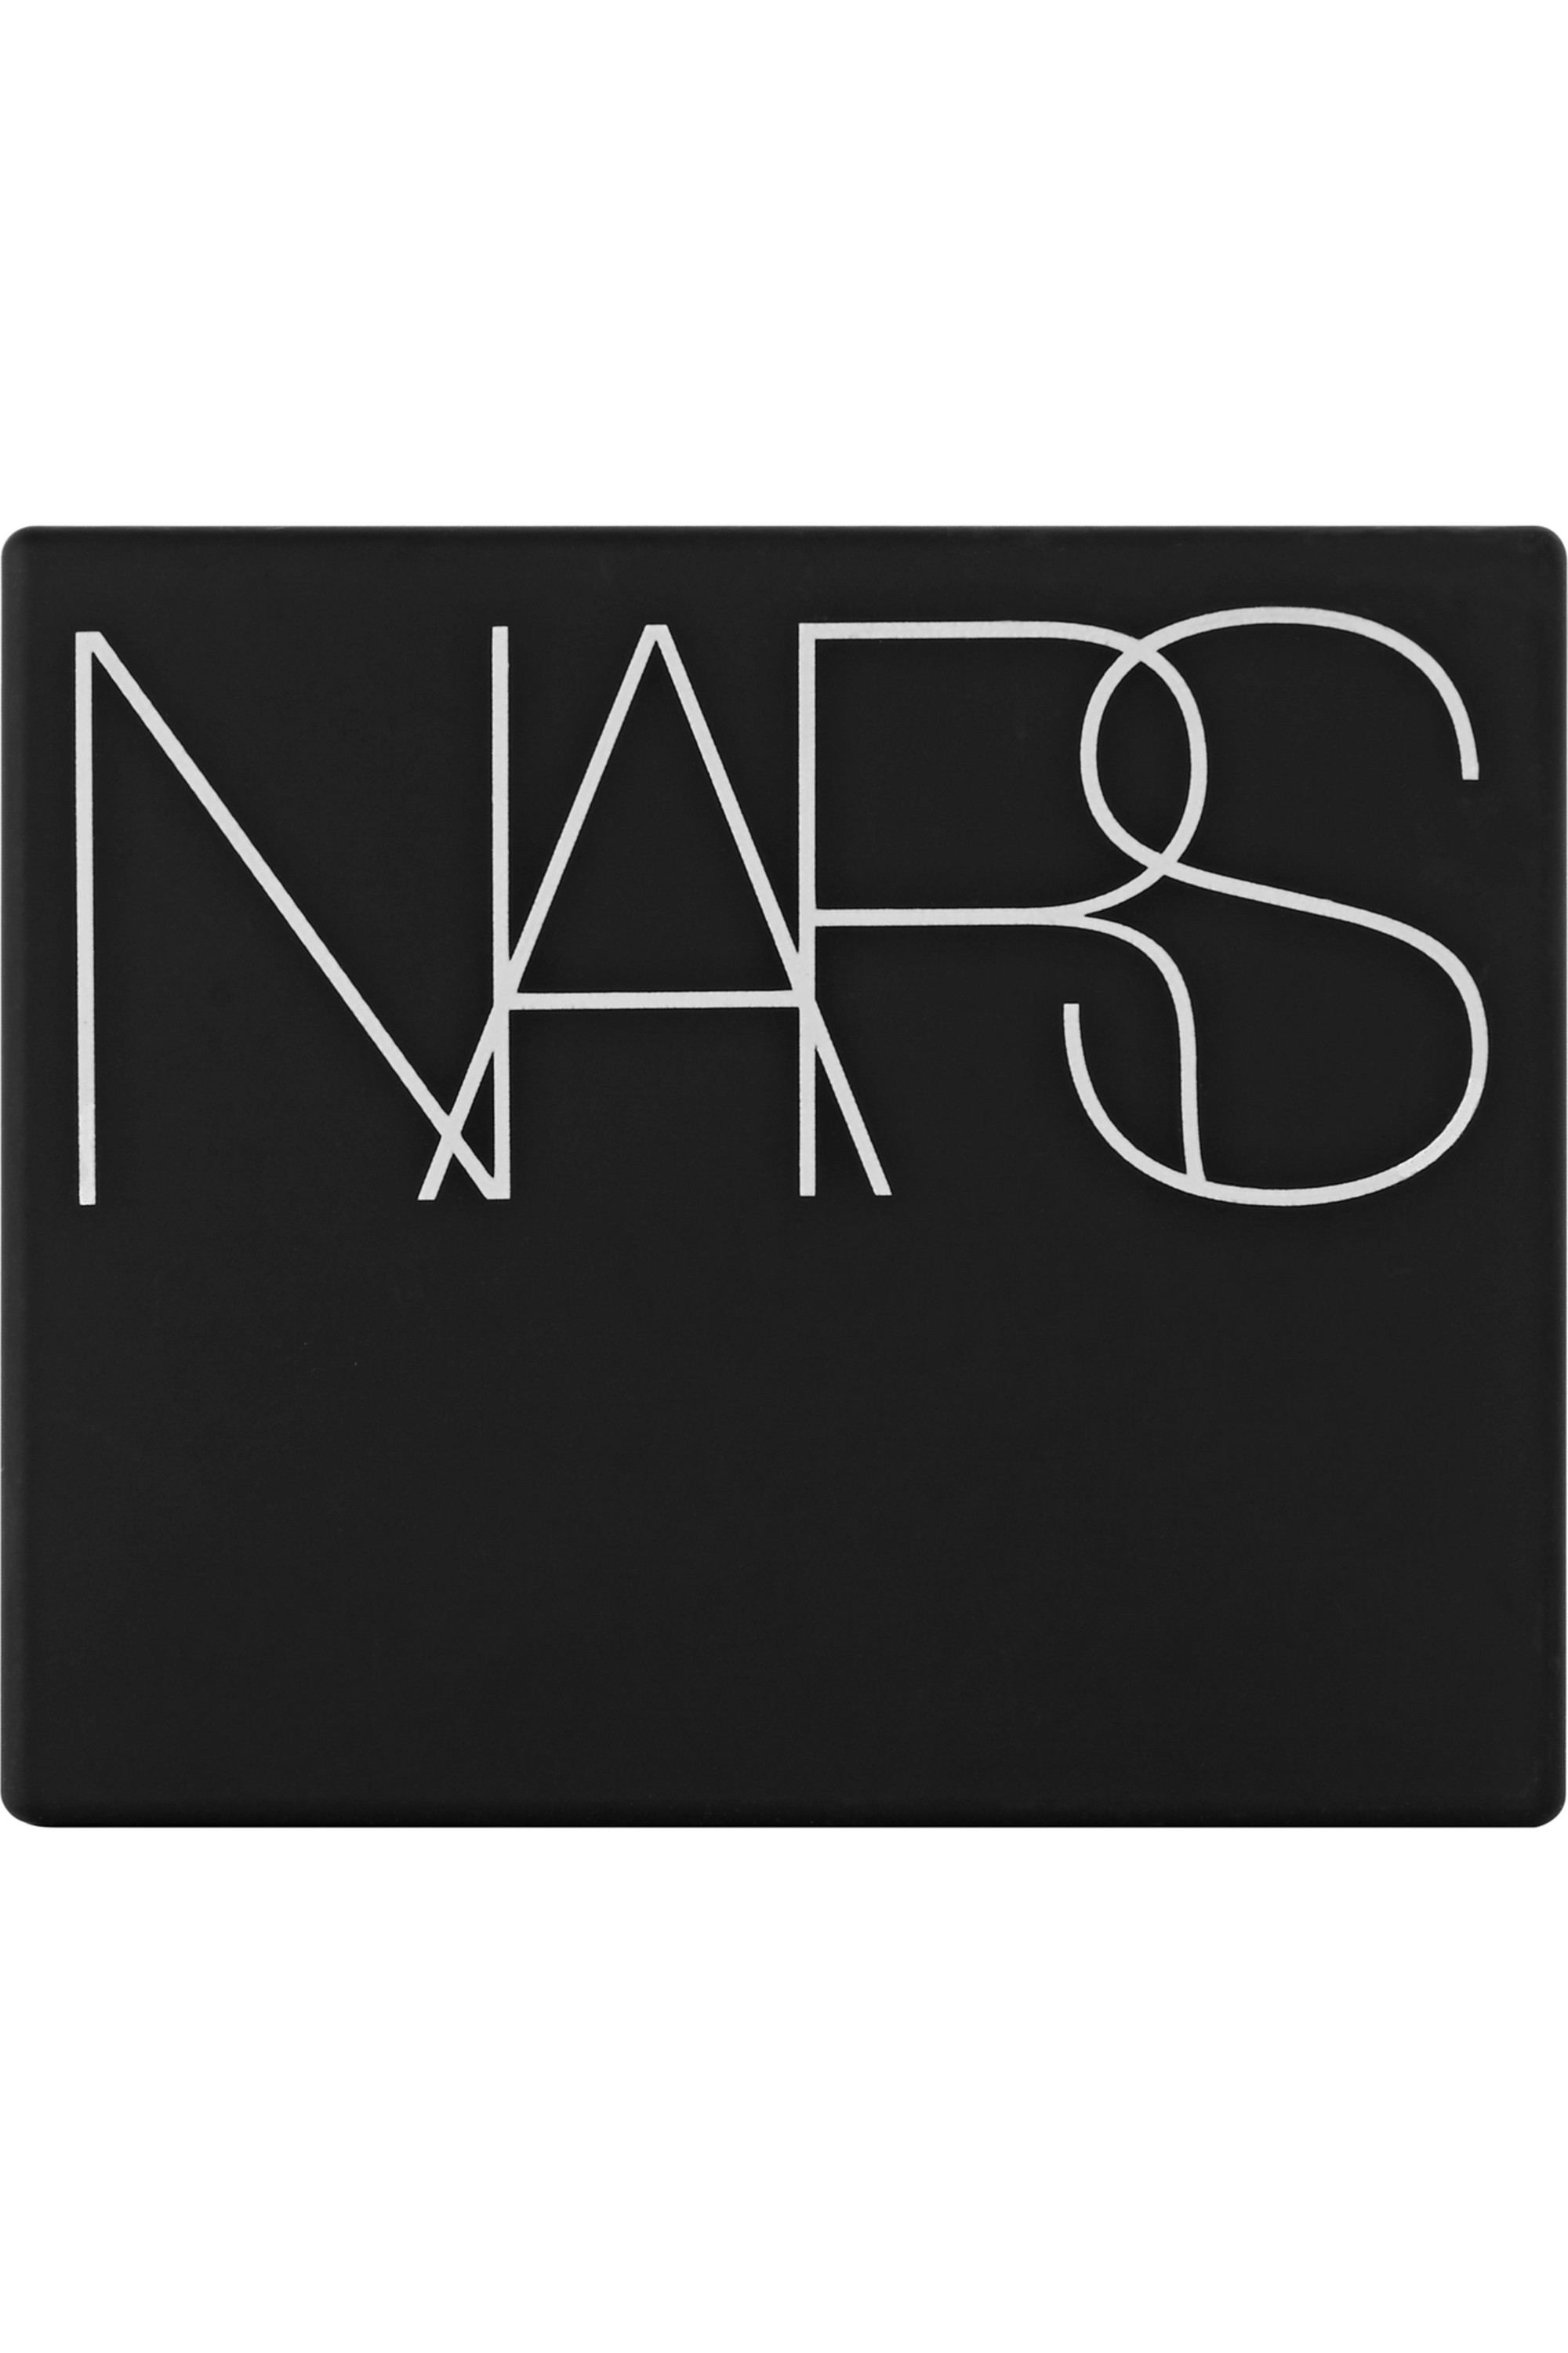 NARS Hardwired Eyeshadow - Night Breed